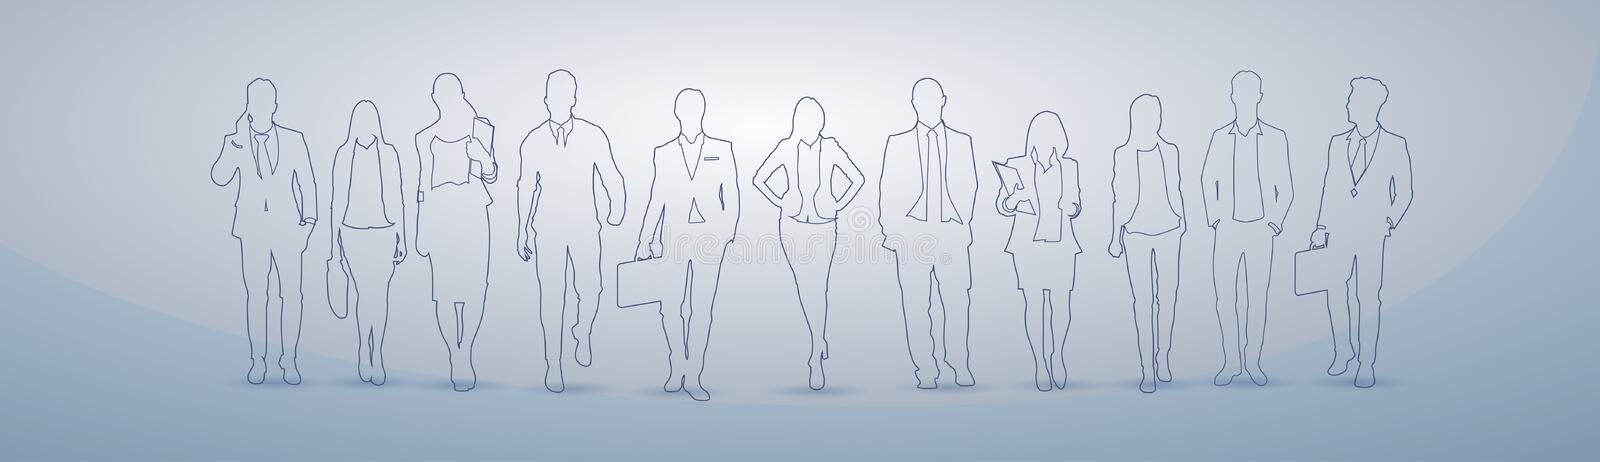 Business People Group Silhouette Executives Team Businesspeople Teamwork Concept stock illustration